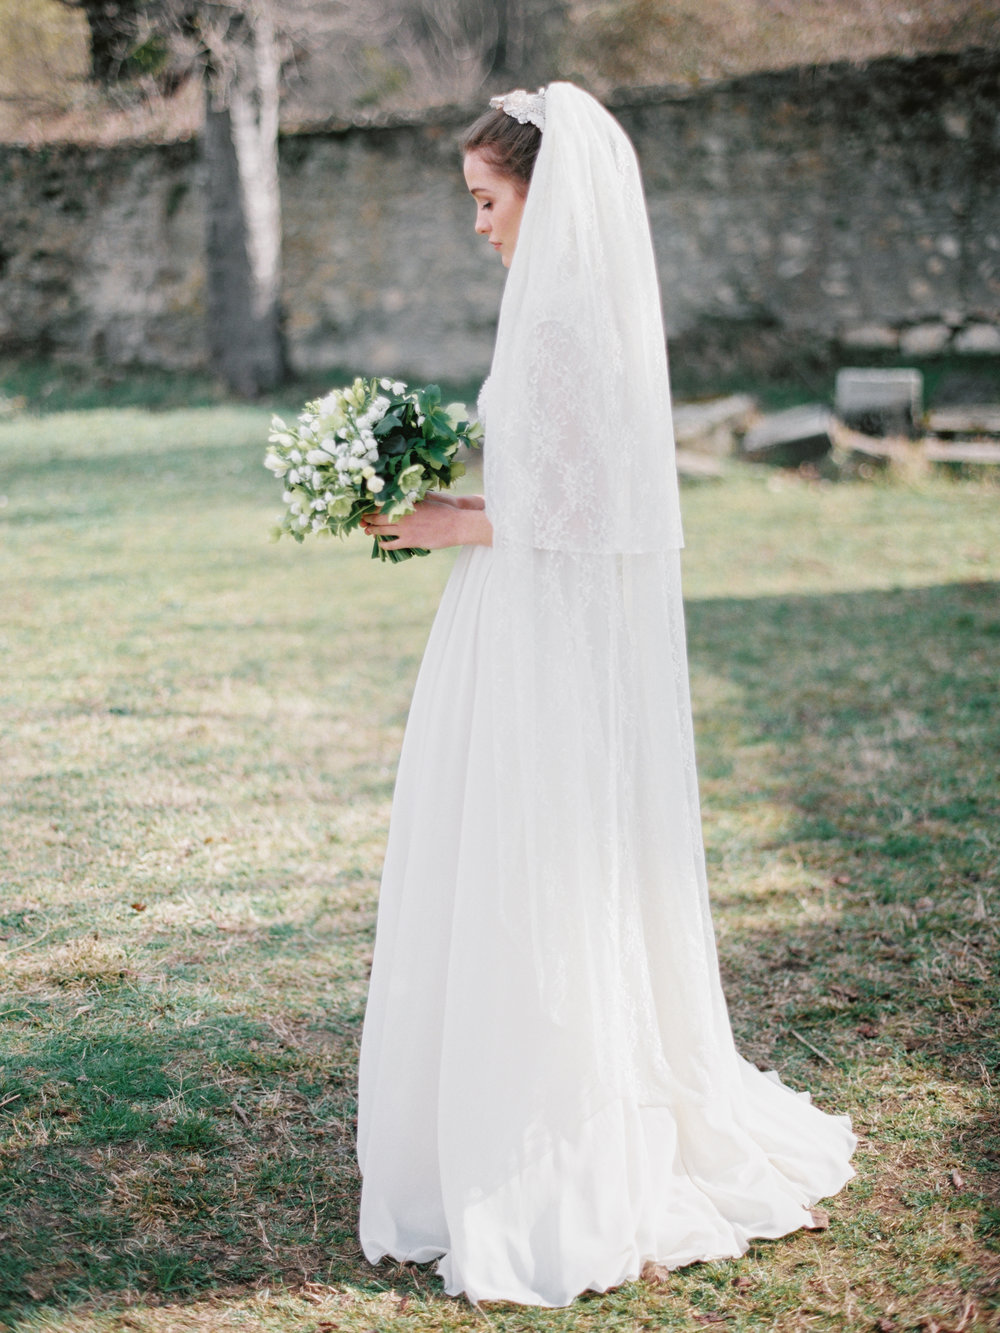 TamaraGigolaphotography,Cathytelle,royalweddingdress,kakheti-0038-3.JPG